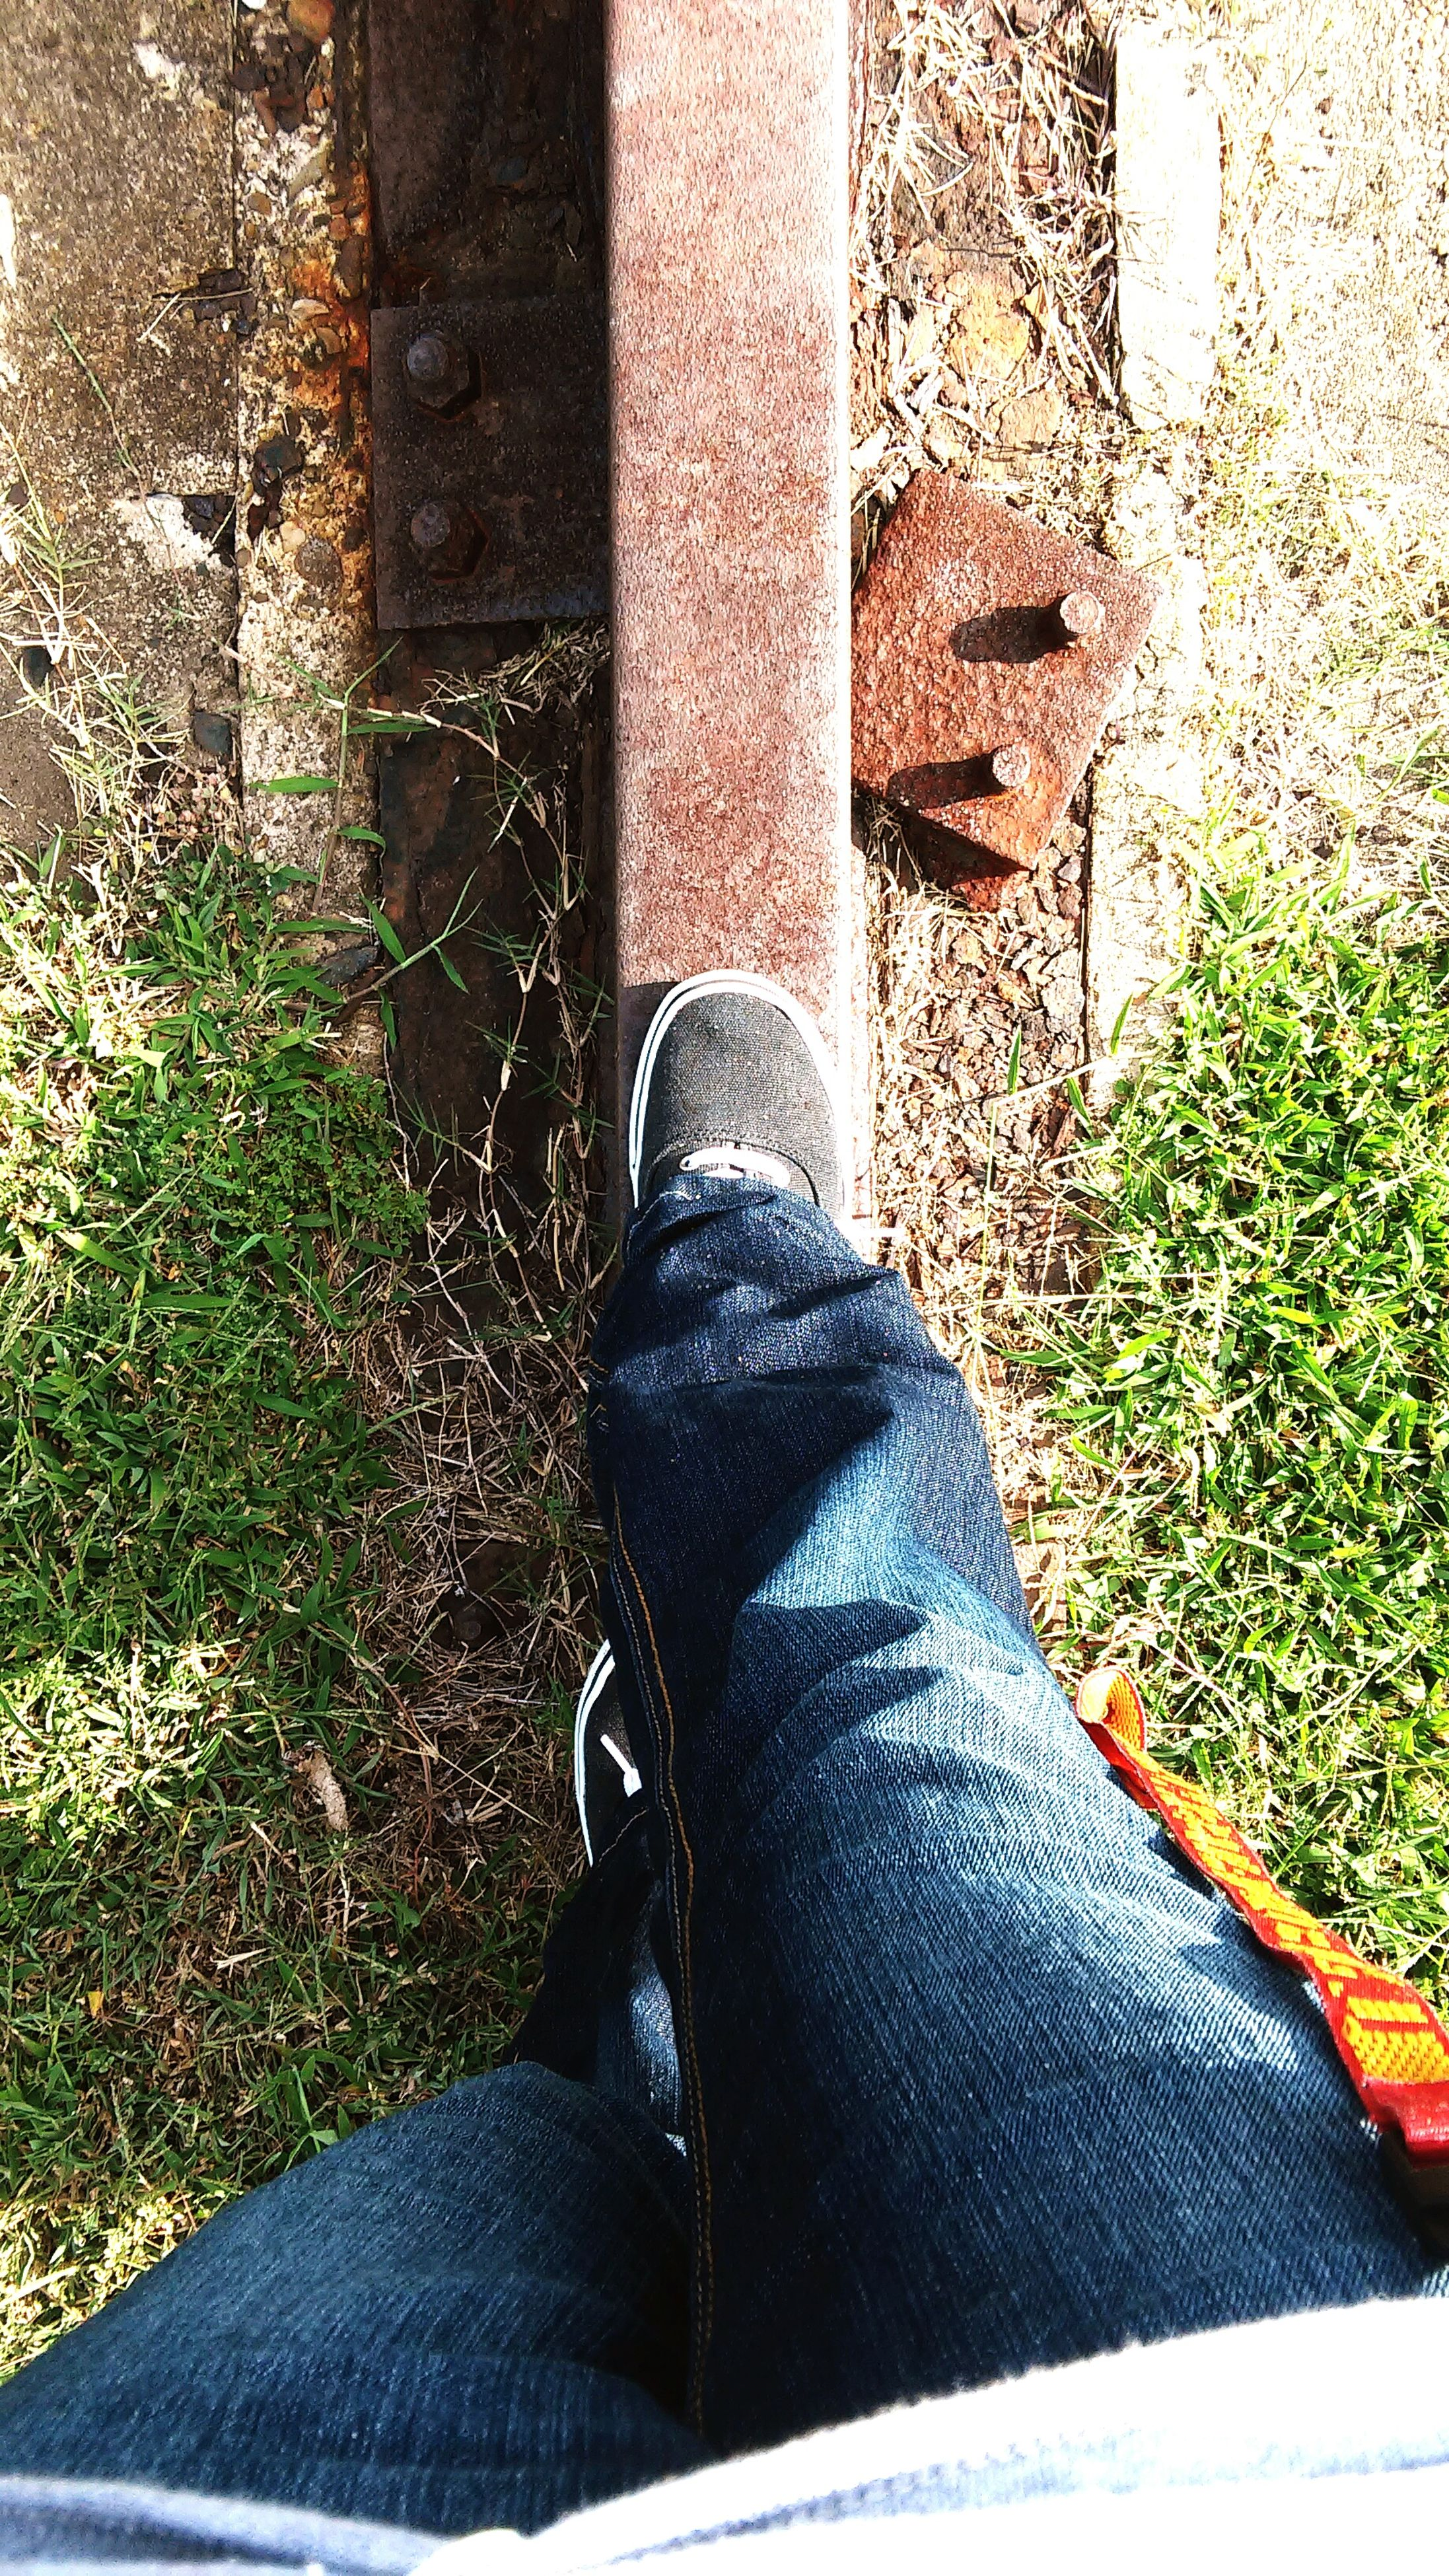 low section, person, lifestyles, personal perspective, shoe, standing, day, sunlight, outdoors, footpath, high angle view, leisure activity, jeans, unrecognizable person, grass, sidewalk